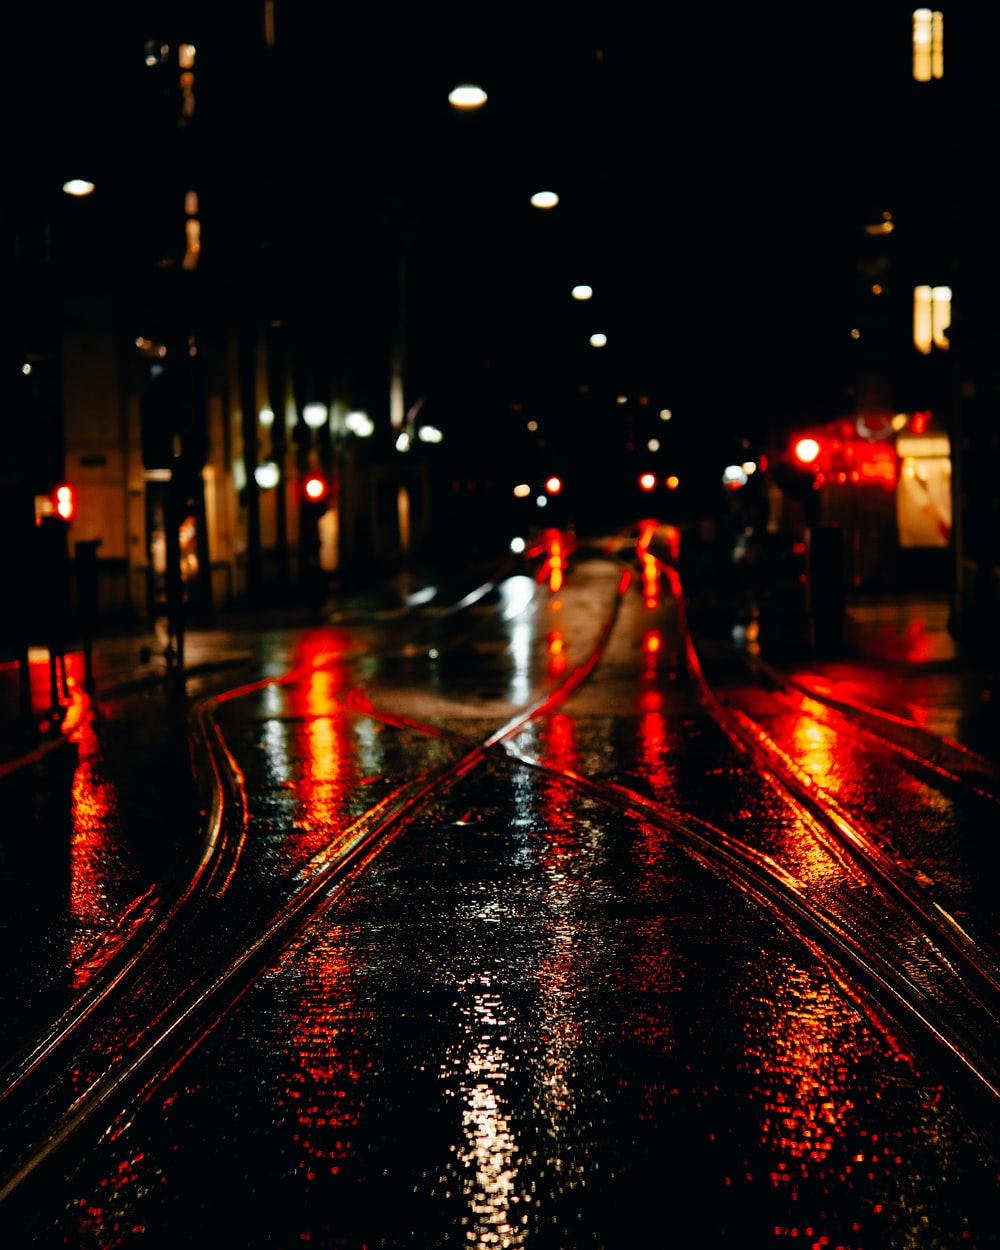 city street with cars during night time